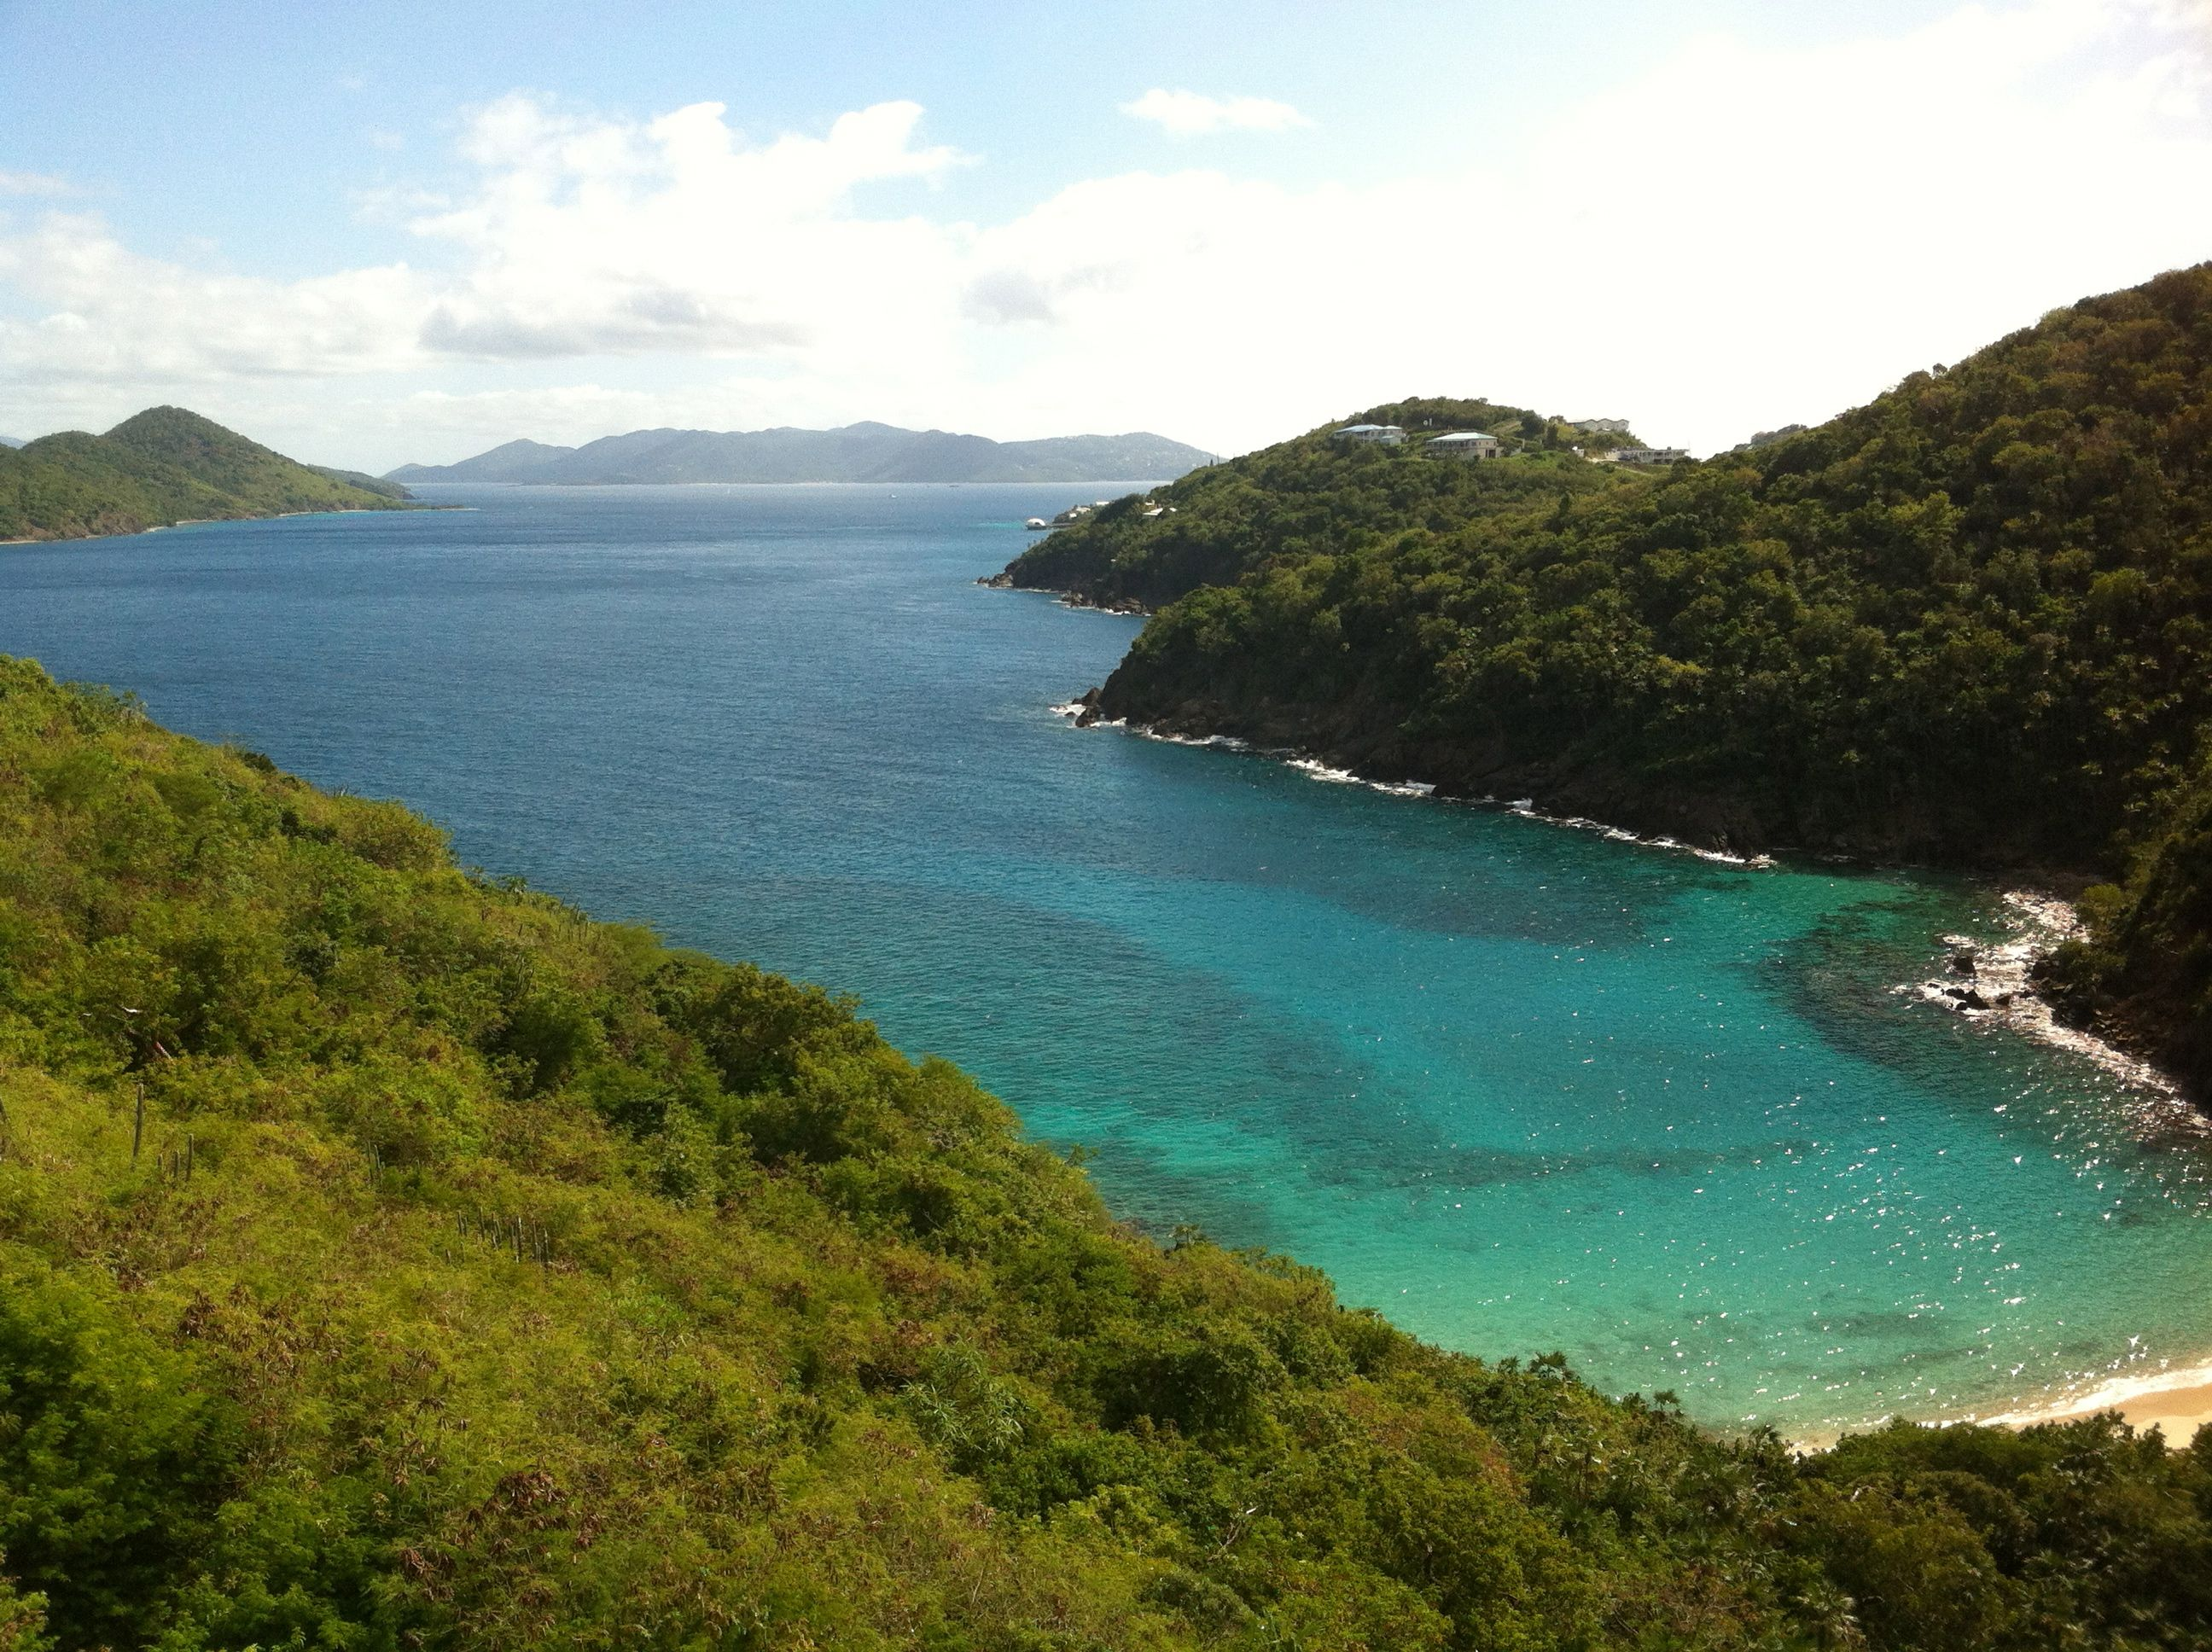 Off our deck in St. Thomas, Virgin Islands